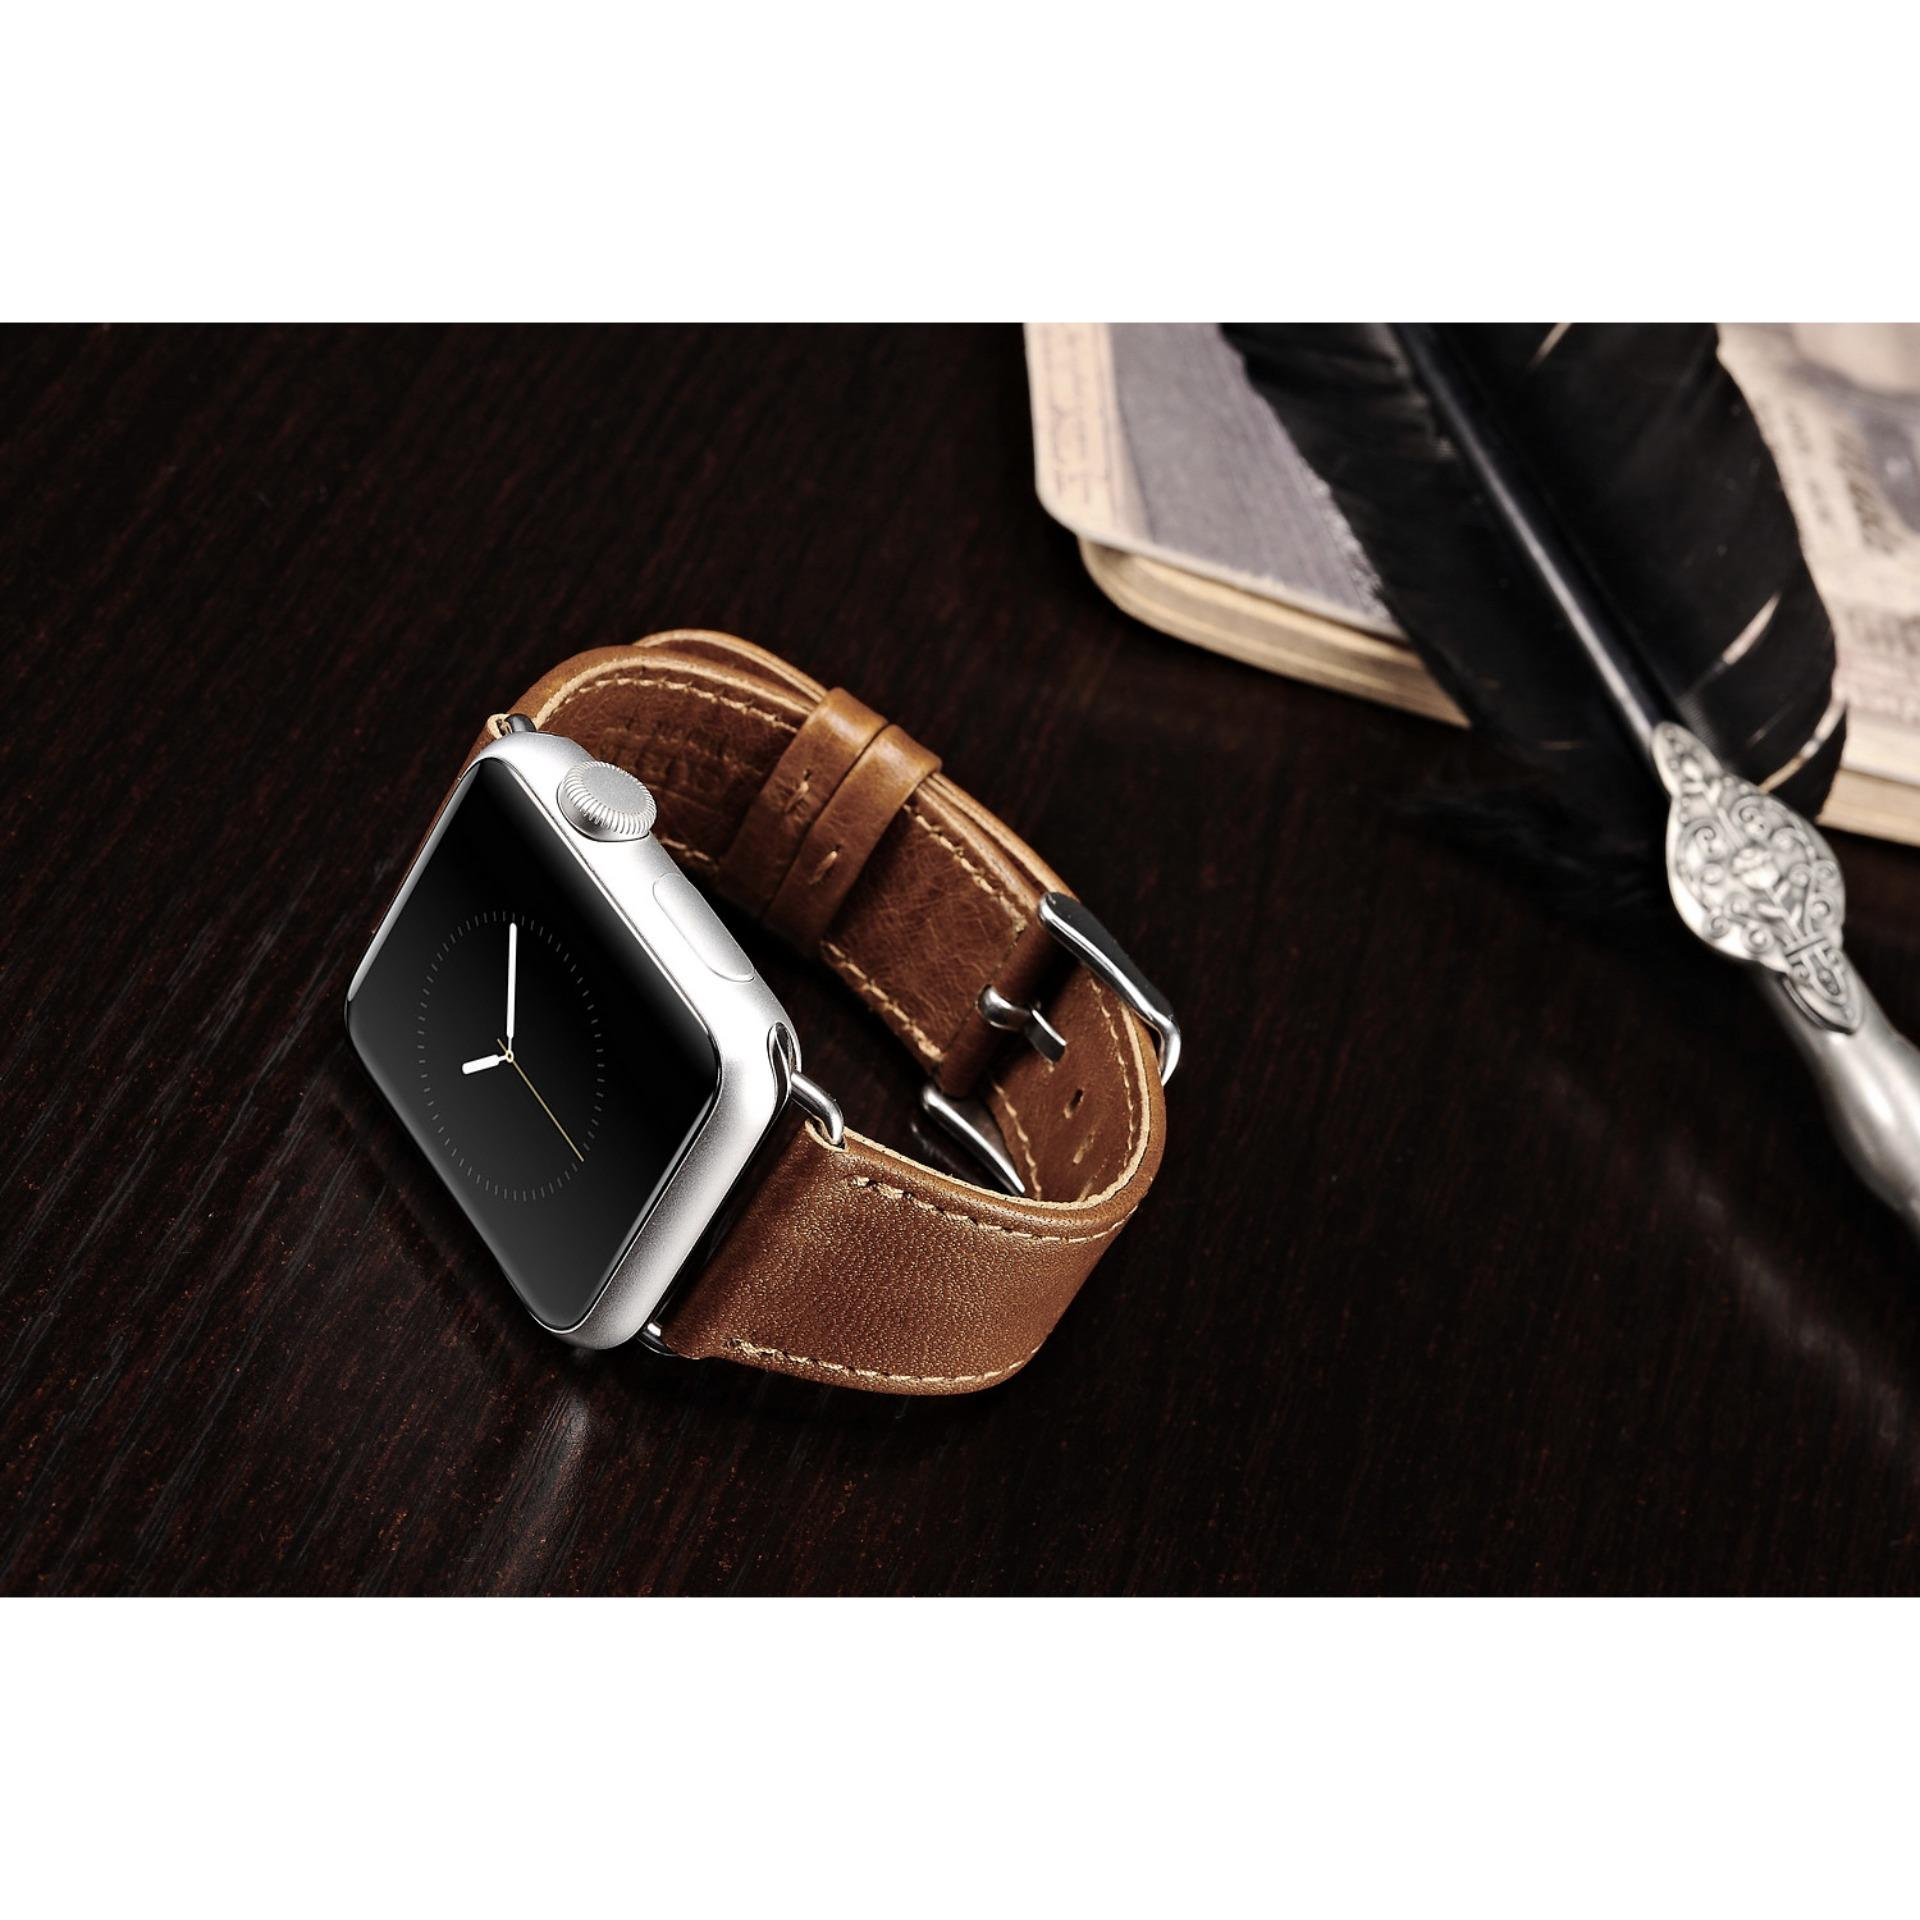 ... Apple Watch Band, 42mm iWatch Band Strap Premium Vintage Genuine Leather Replacement Watchband with Secure ...